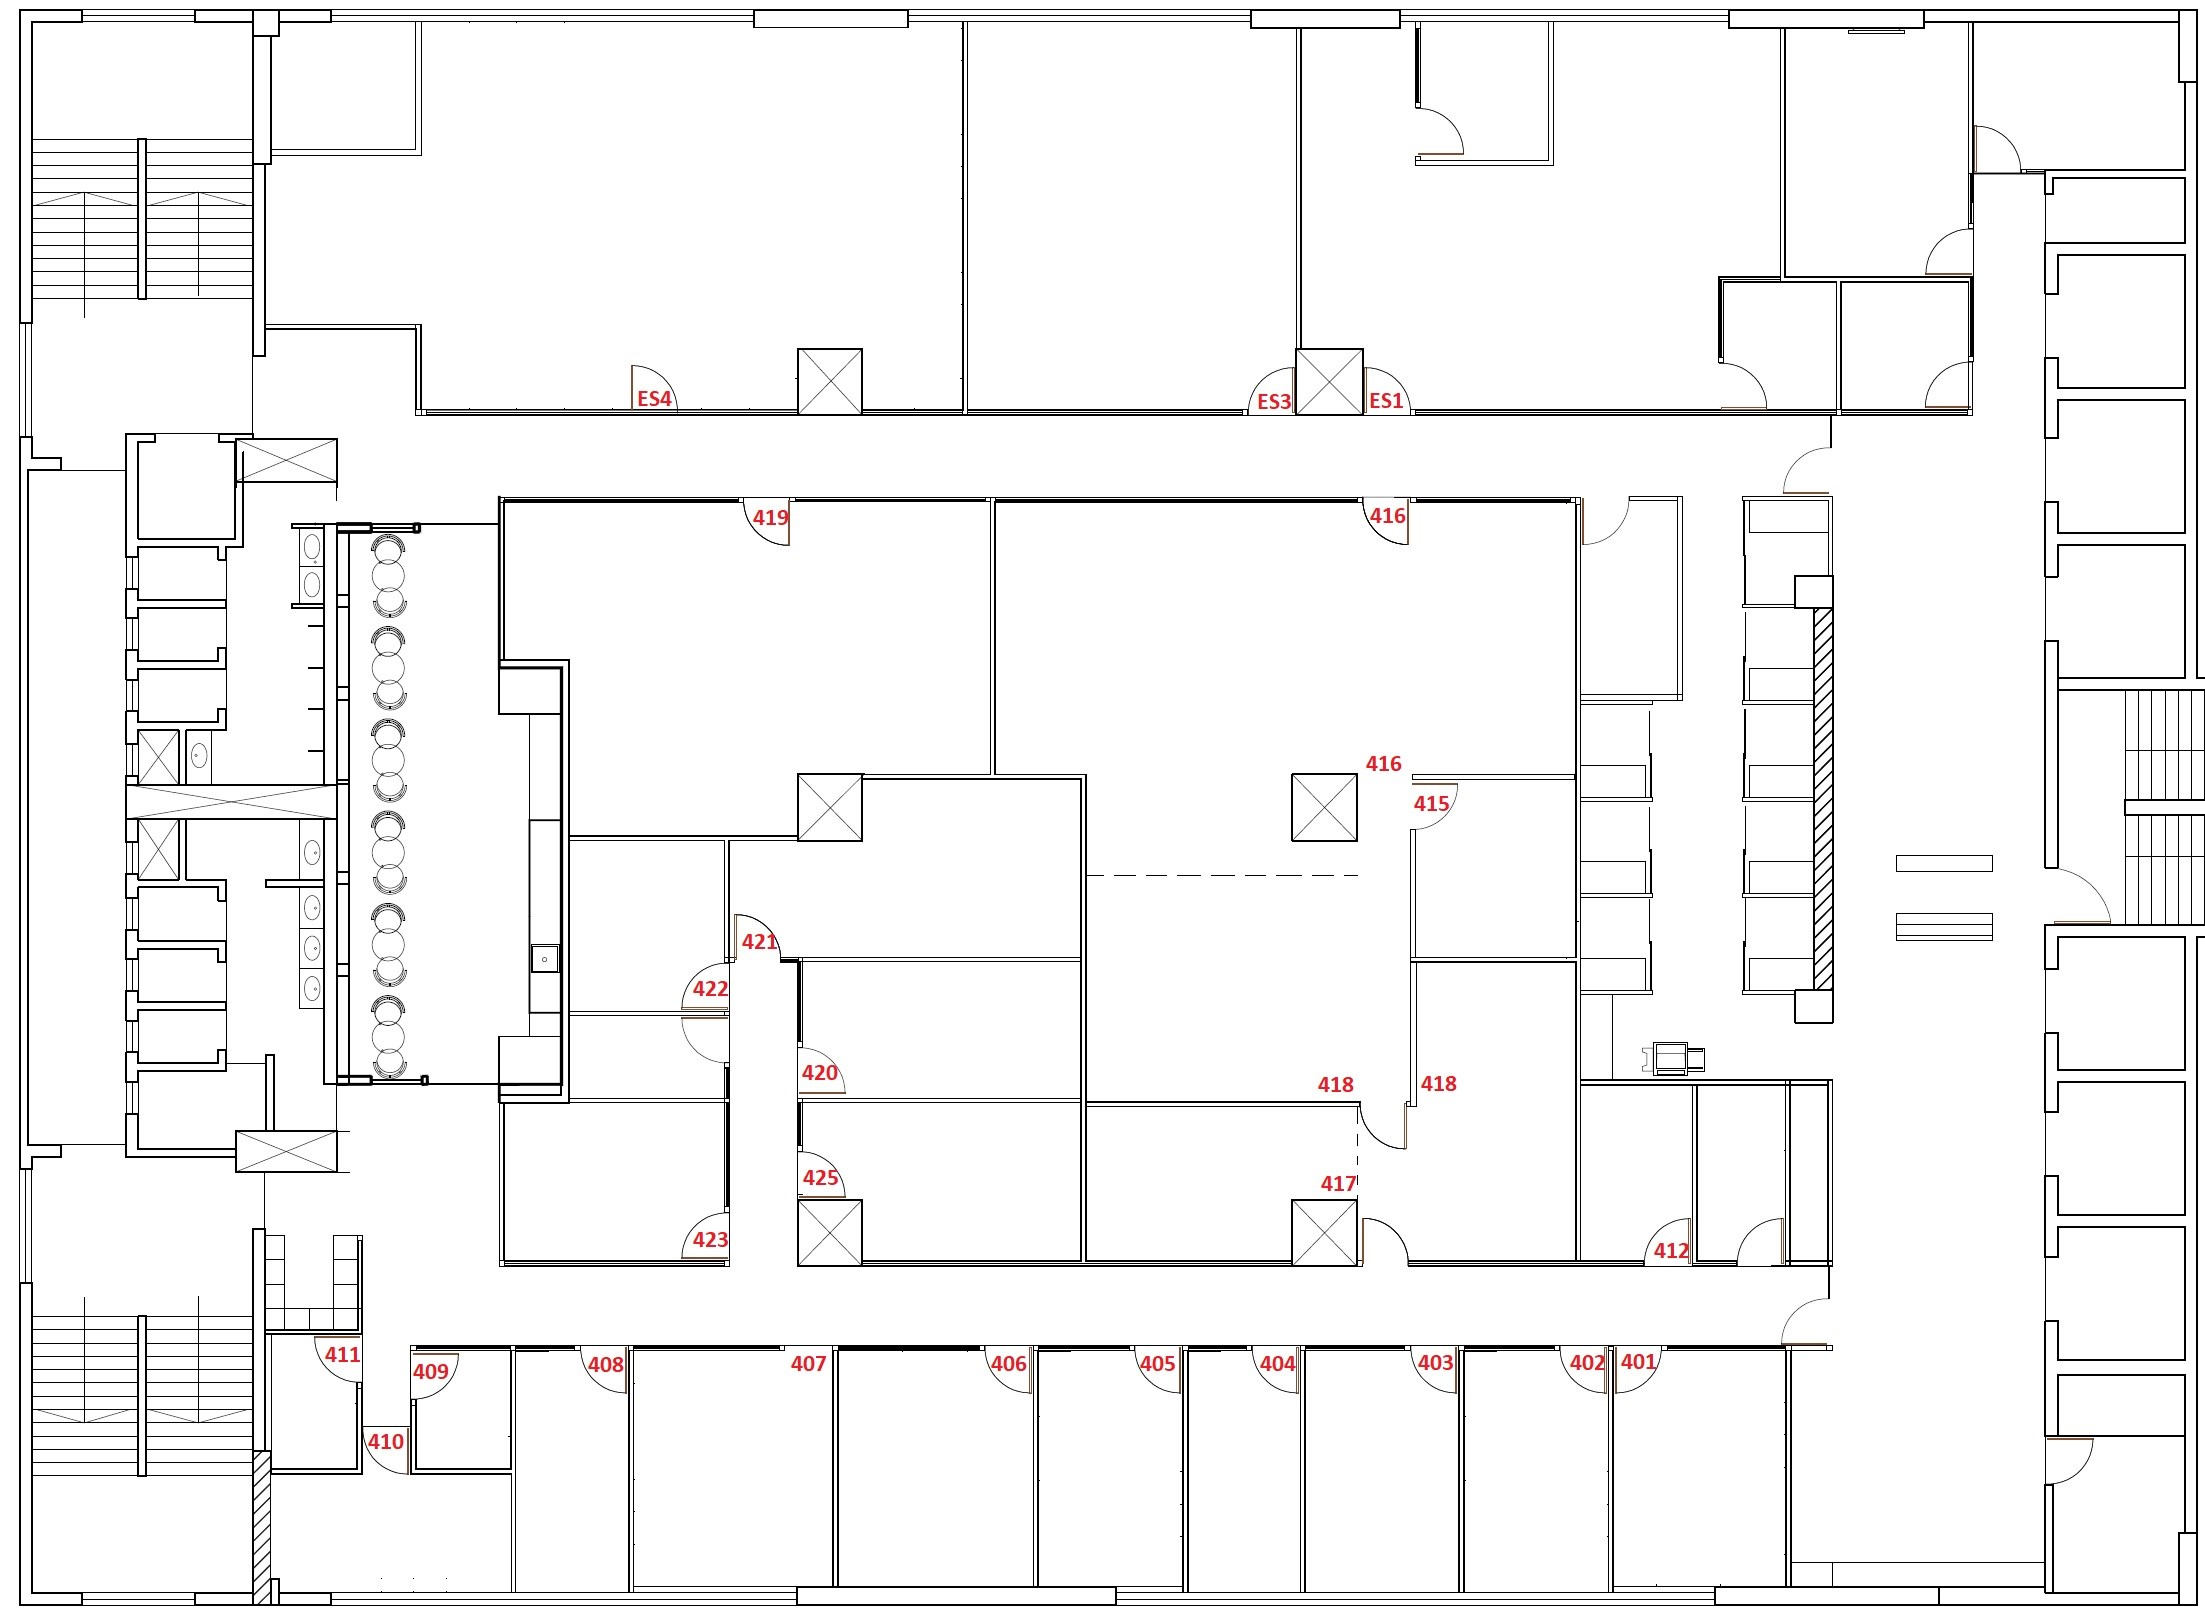 MBC Thane - Floor Plan.jpg